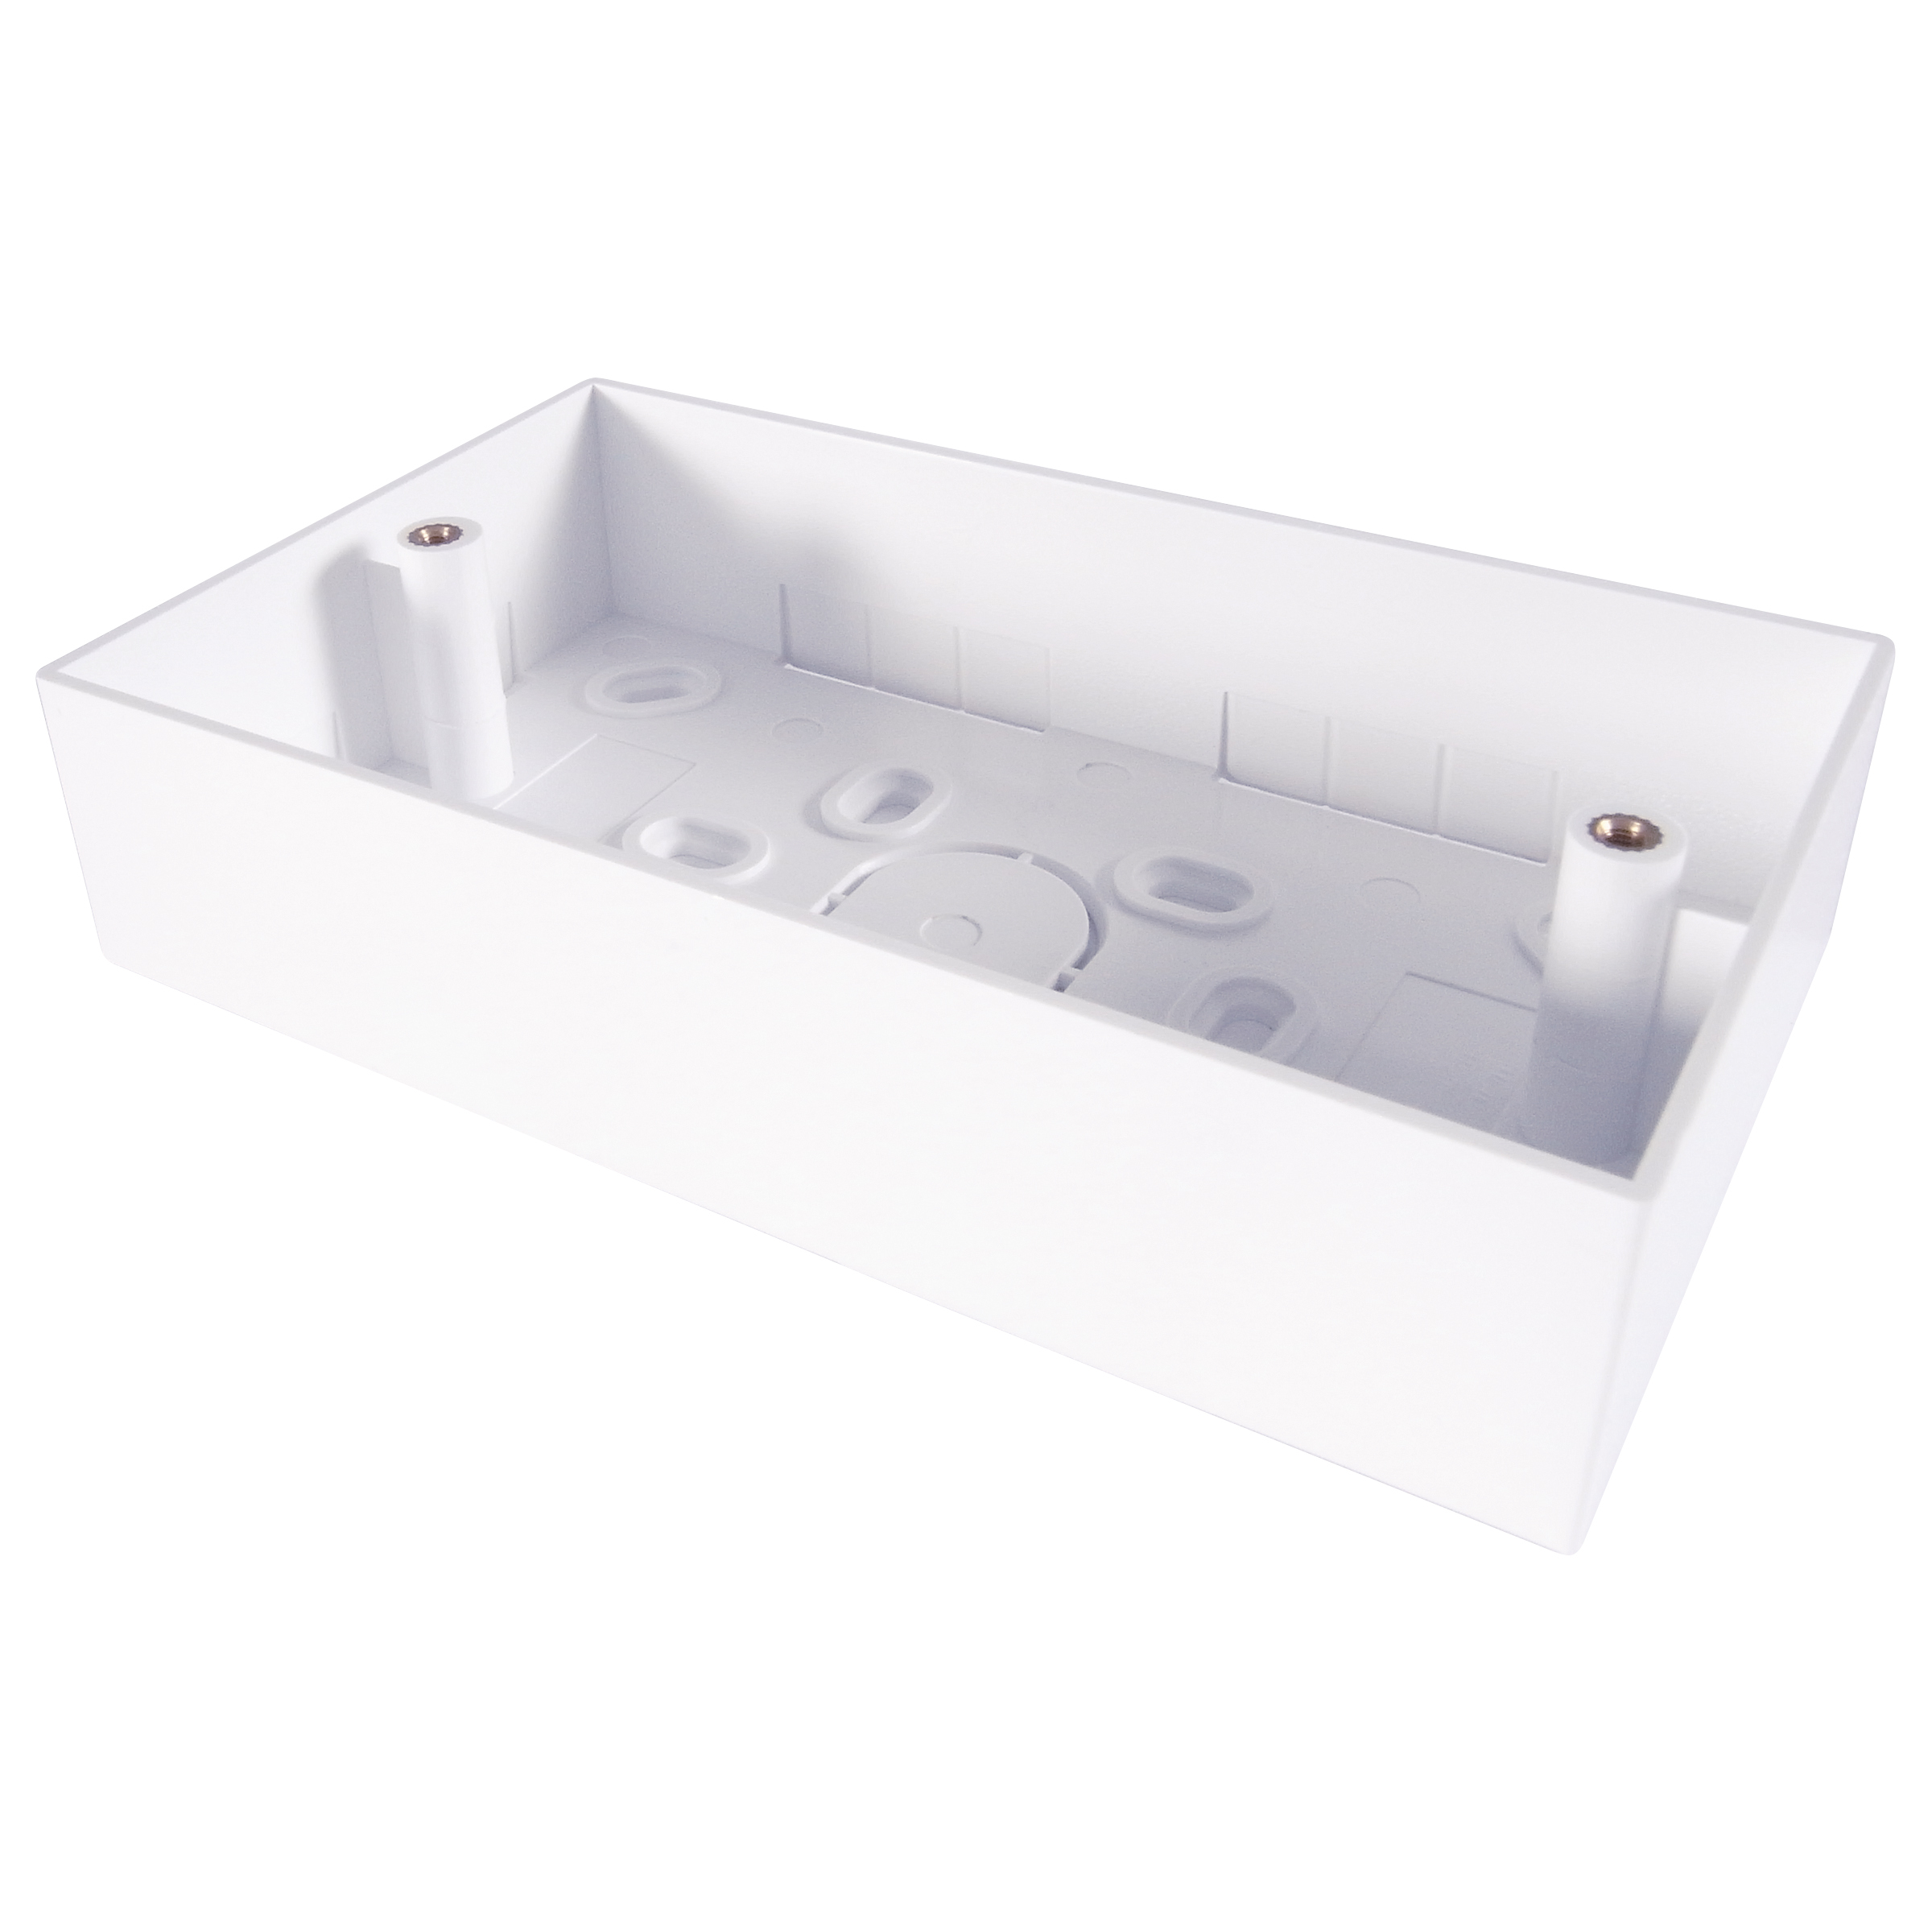 90-0106 group gear Double Back Box - NA01